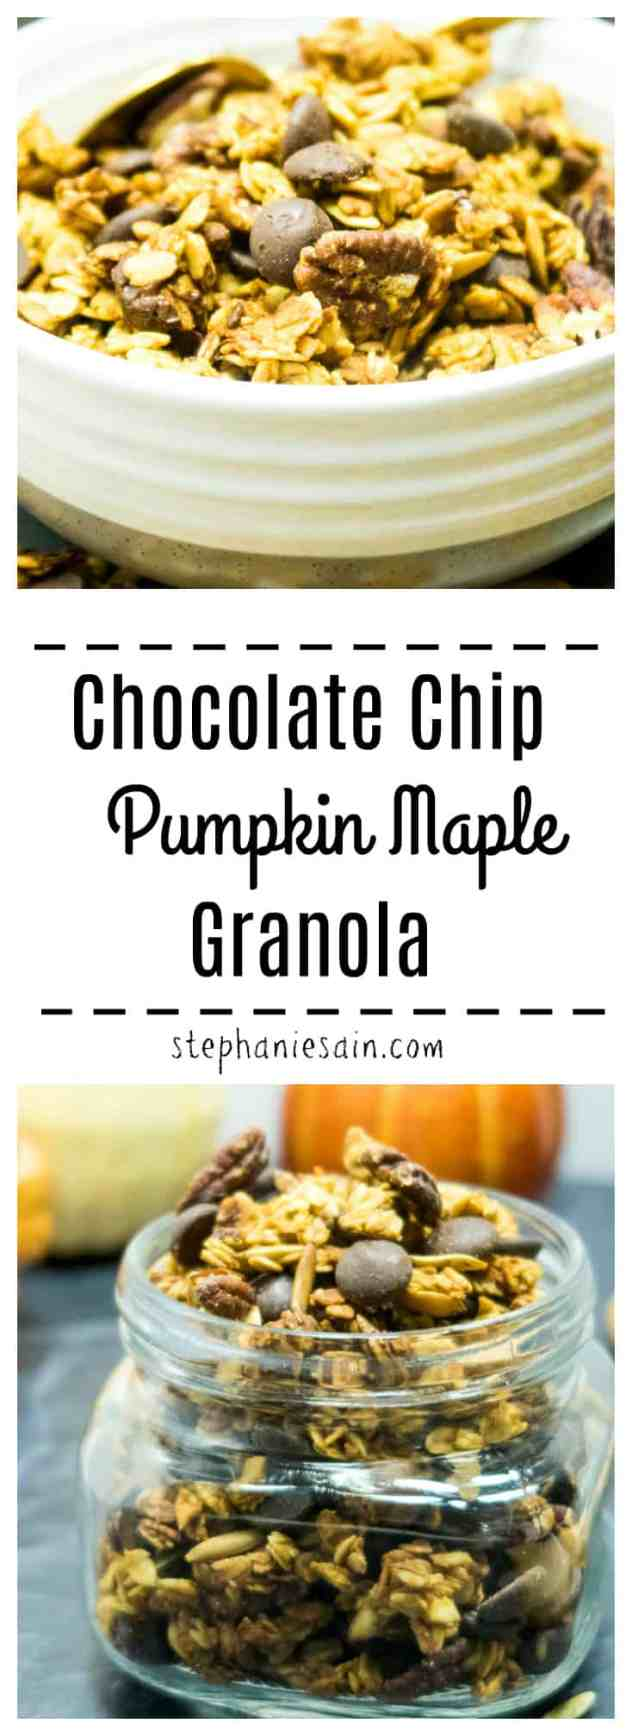 Chocolate Chip Pumpkin Maple Granola is an easy recipe bursting with Fall flavors of pumpkin, maple & pecans. Perfect for breakfast or a grab & go snacking. Vegan & Gluten Free.